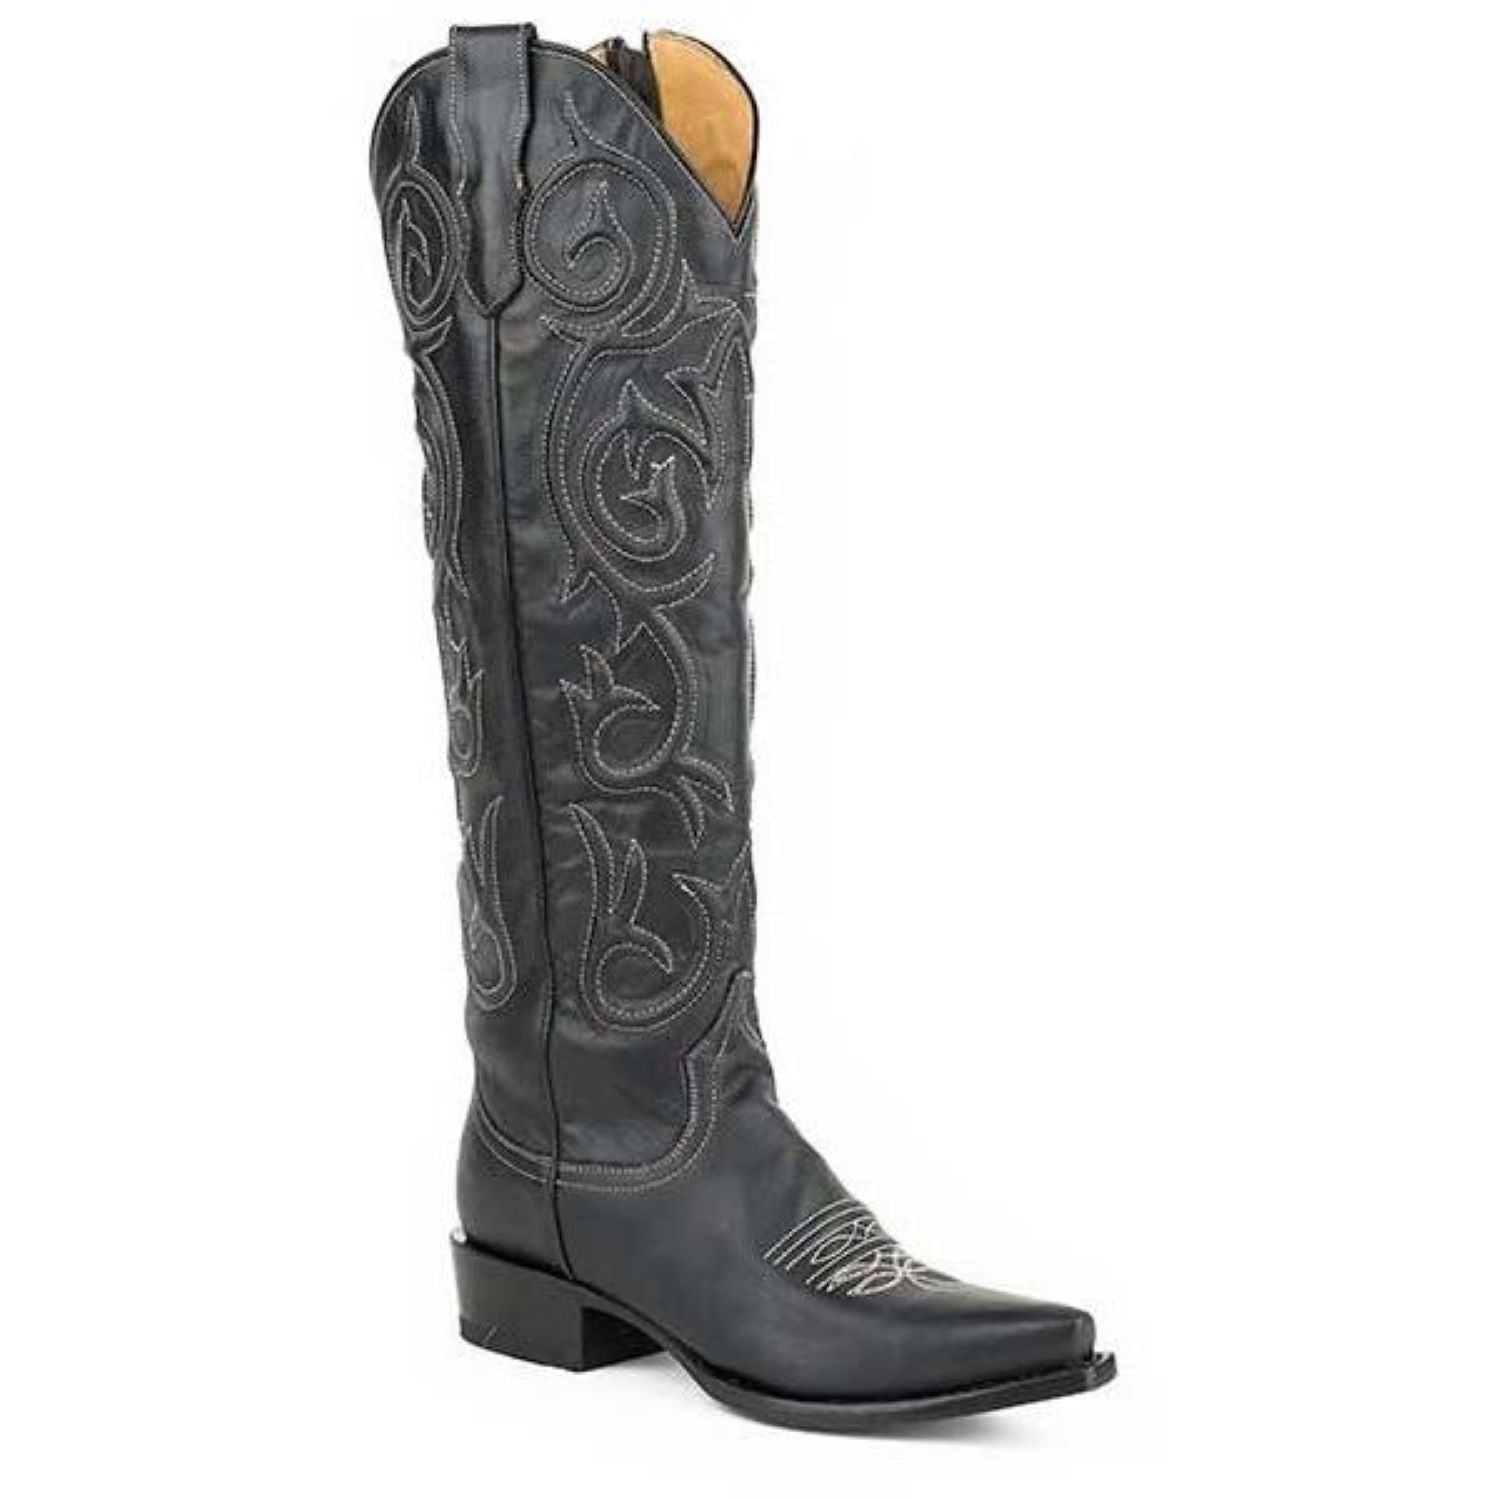 Stetson Blaire Knee High Boots